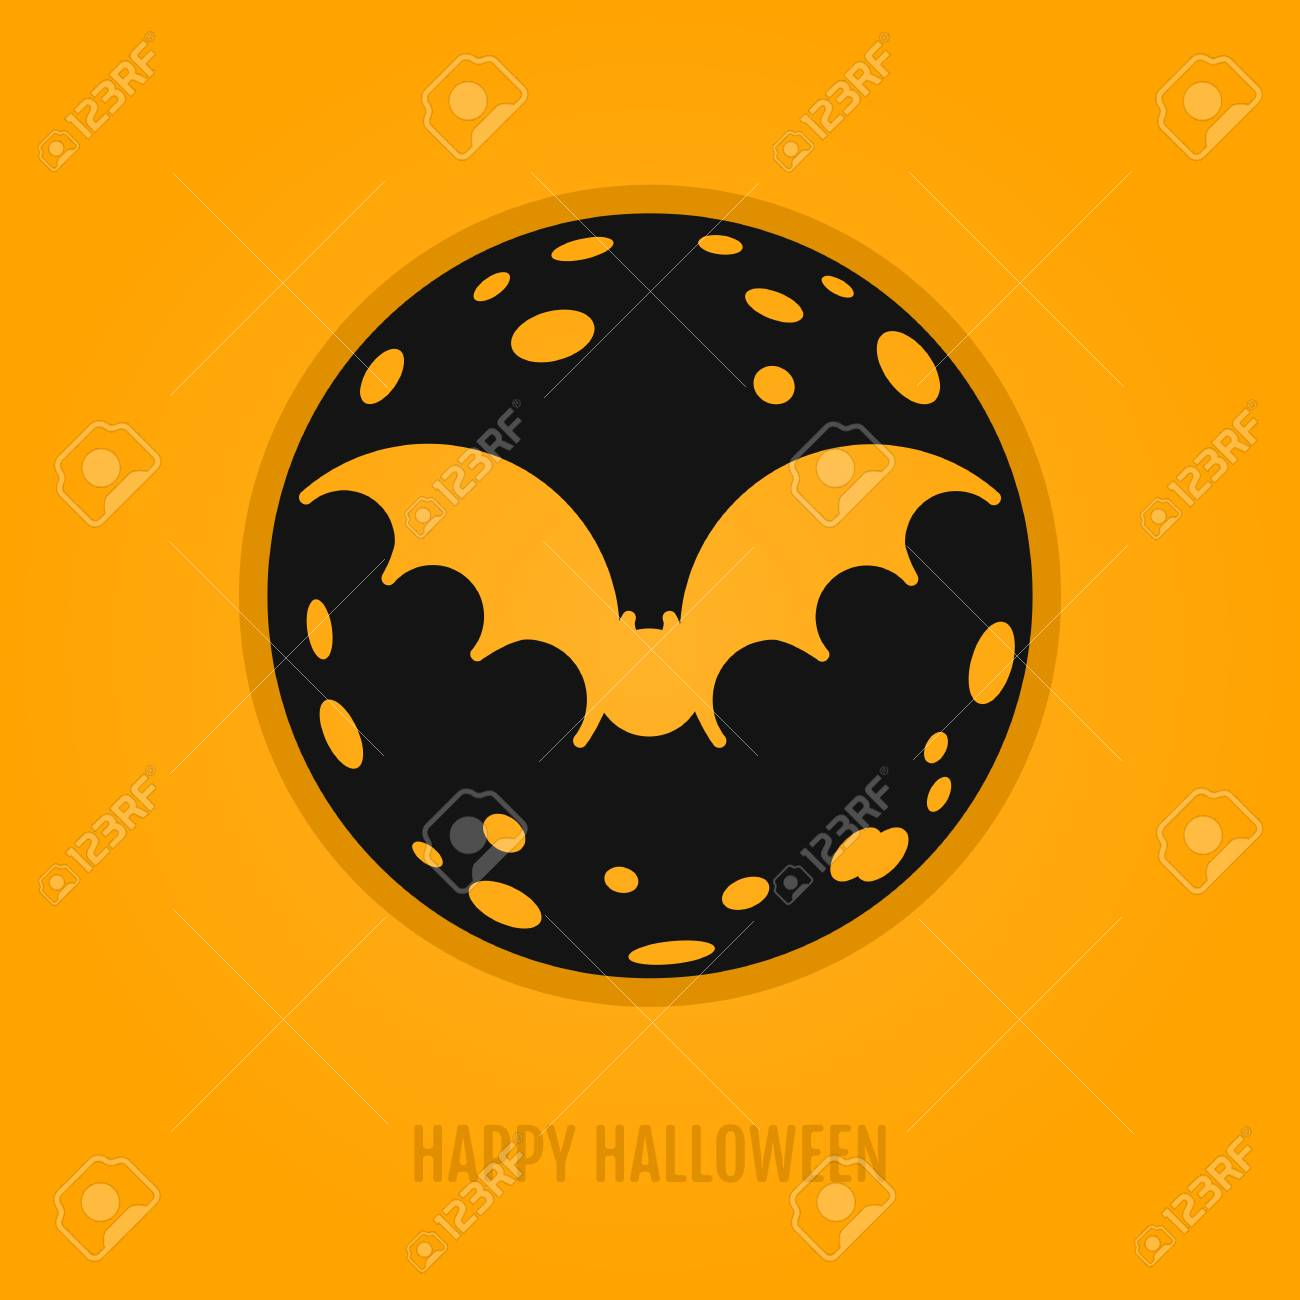 Happy Halloween Concept With Bat And Moon. Night Party Design For Banner,  Web Graphics